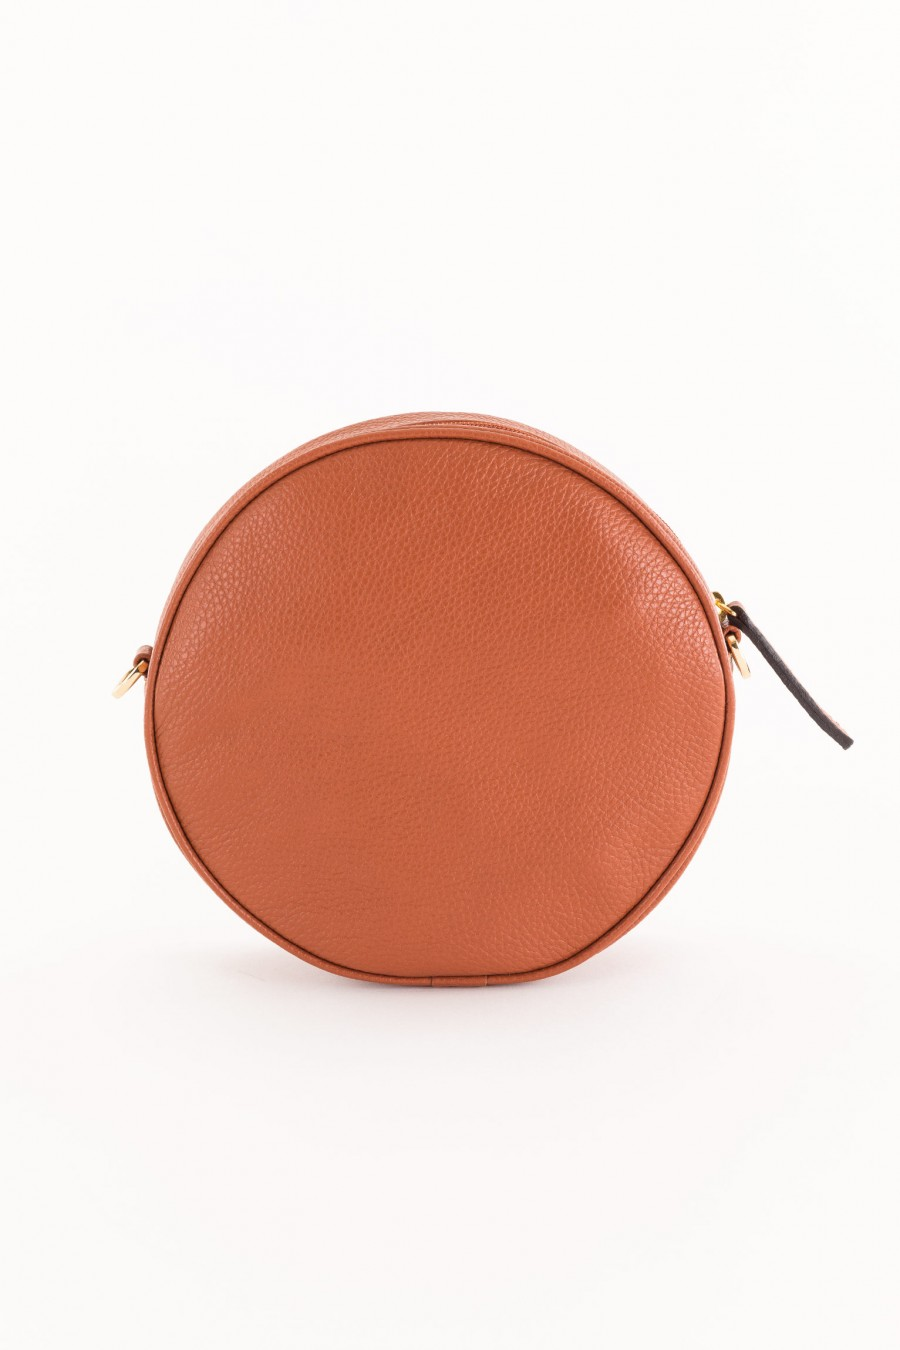 round leather-colored bag with shoulder strap